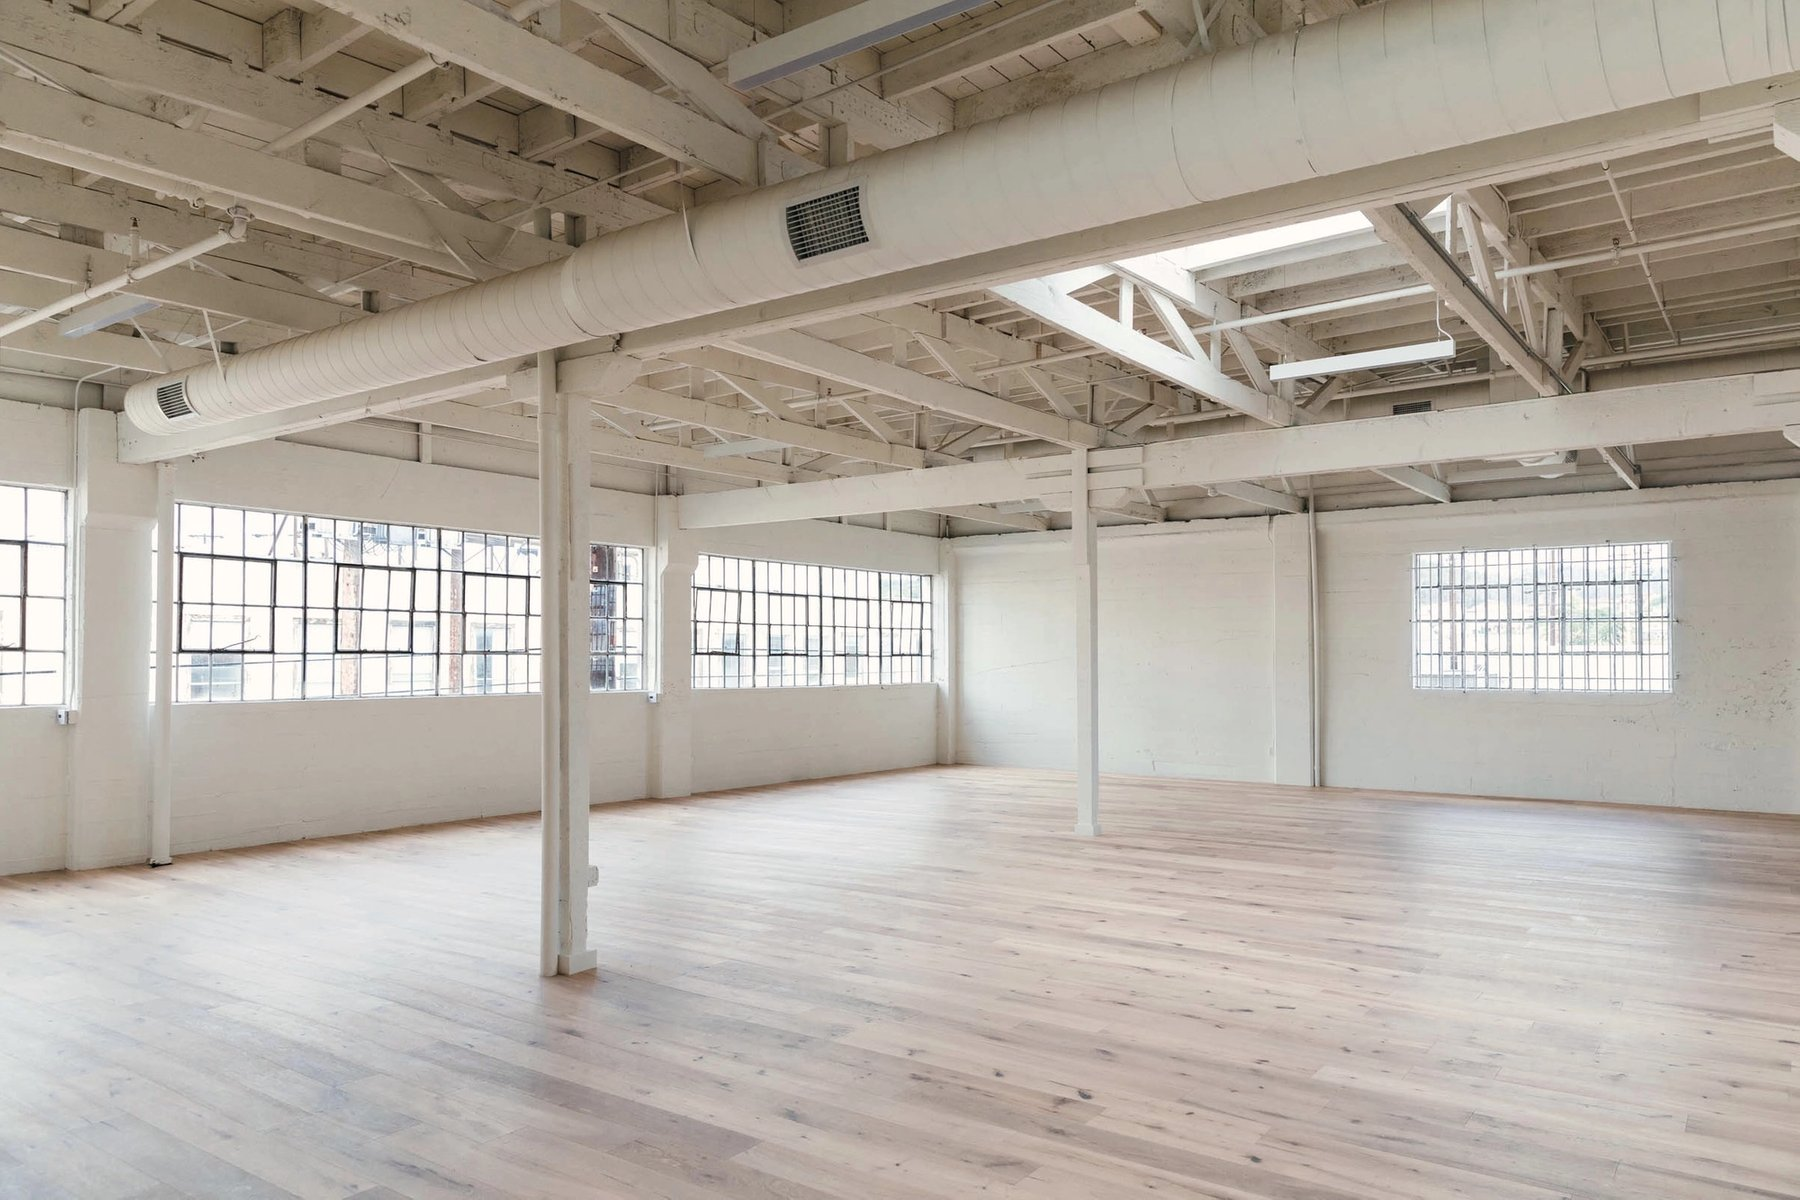 Over 4,000 s.f. of open warehouse space configured for photoshoots and events